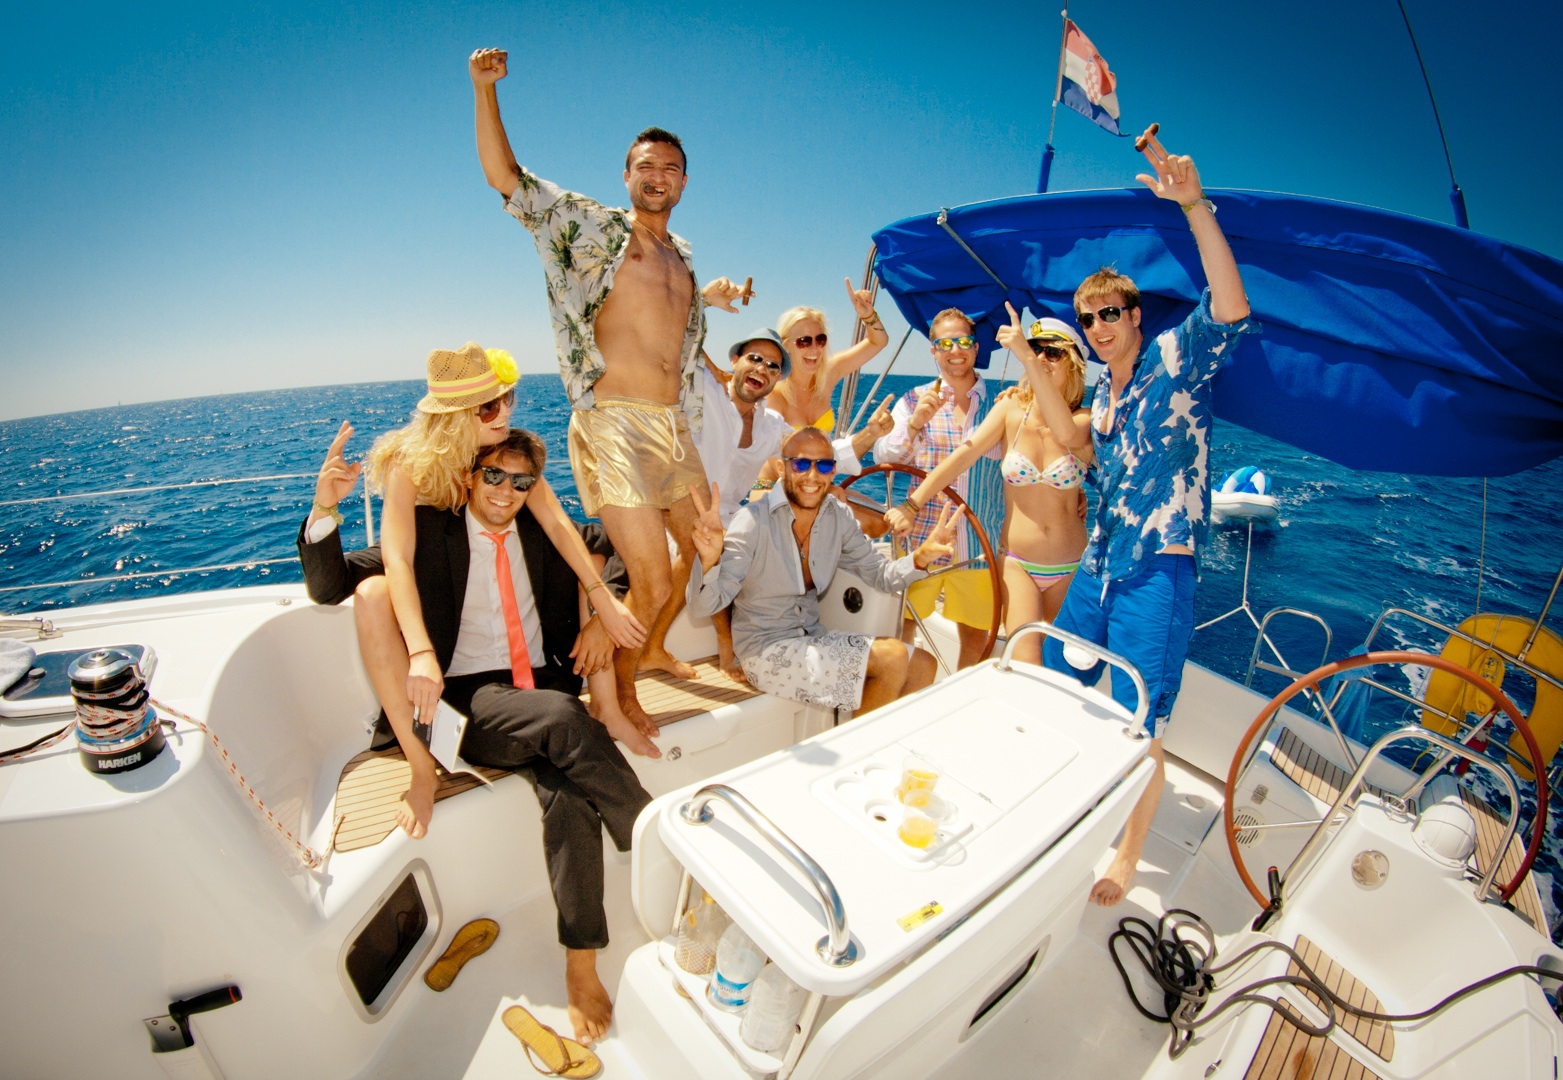 Best party islands in the world: Party sailing in Europe